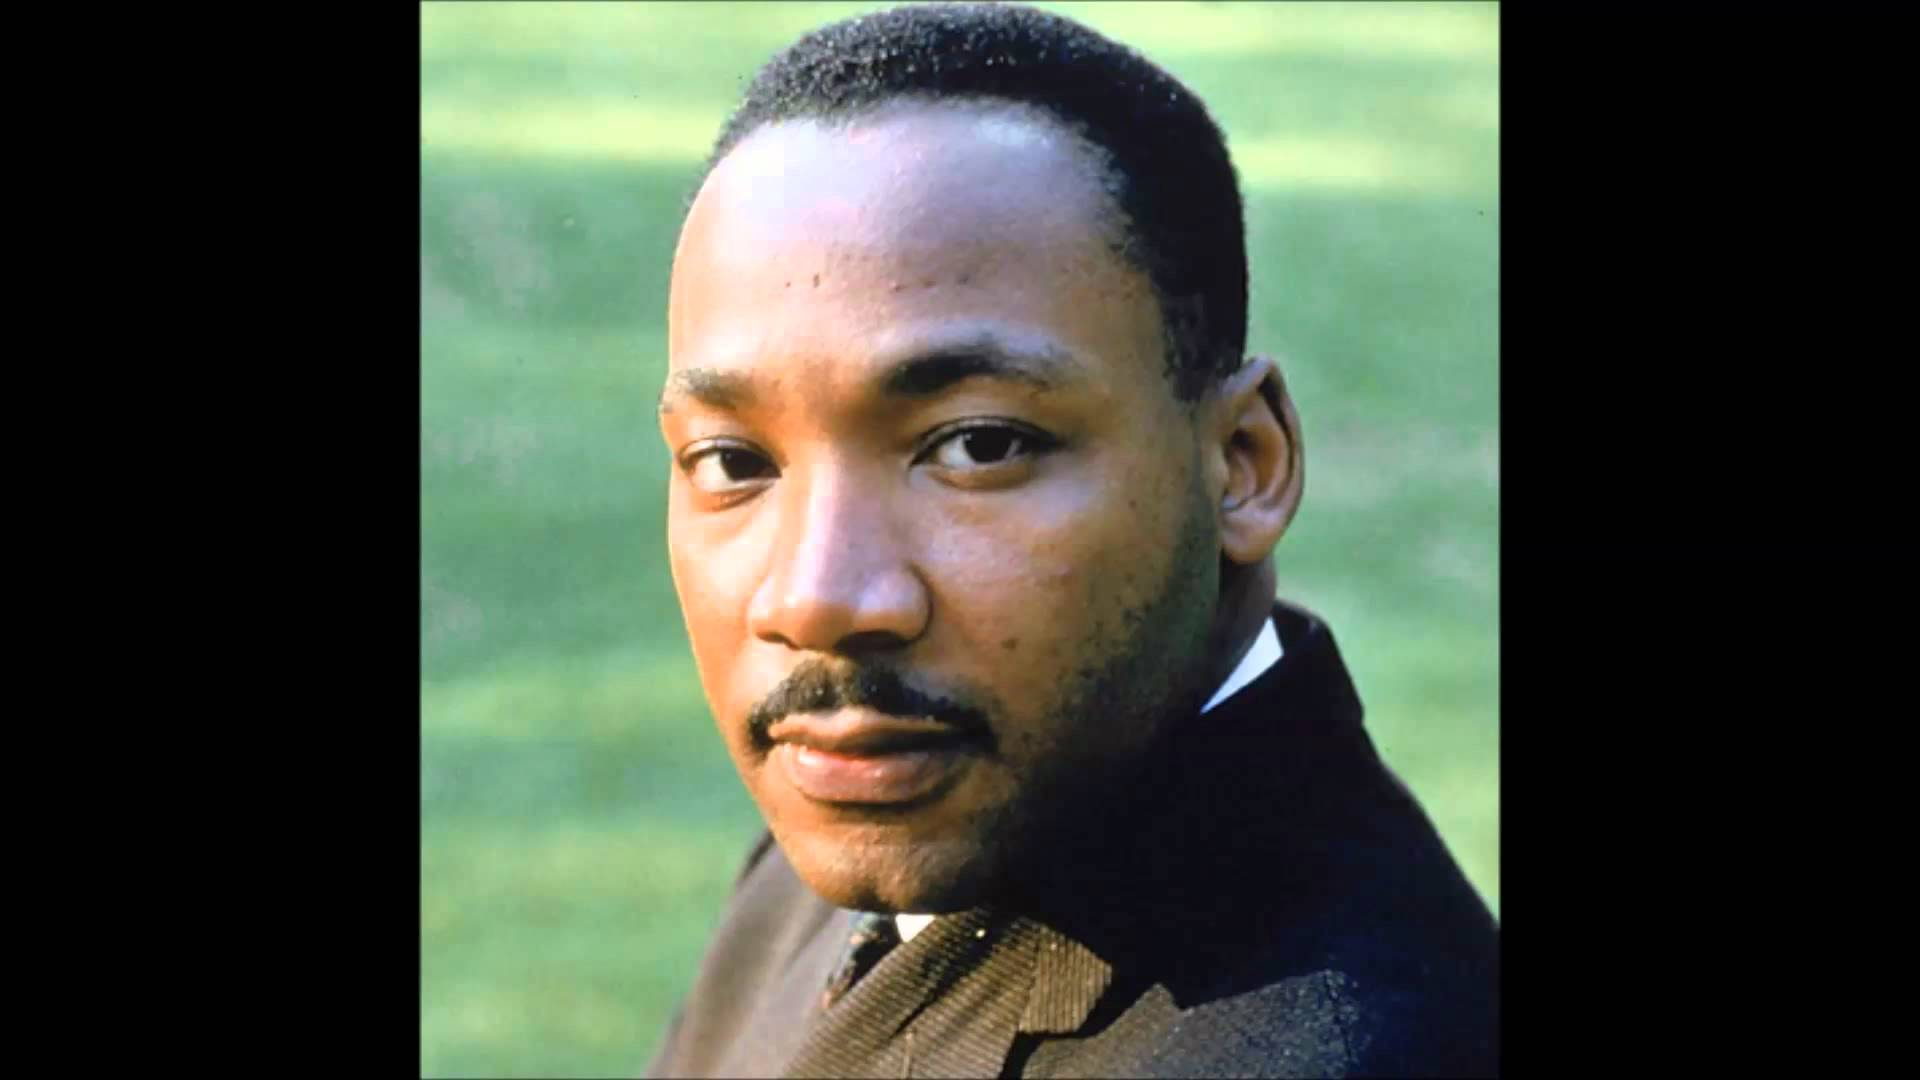 Images of Martin Luther King Jr | 1920x1080